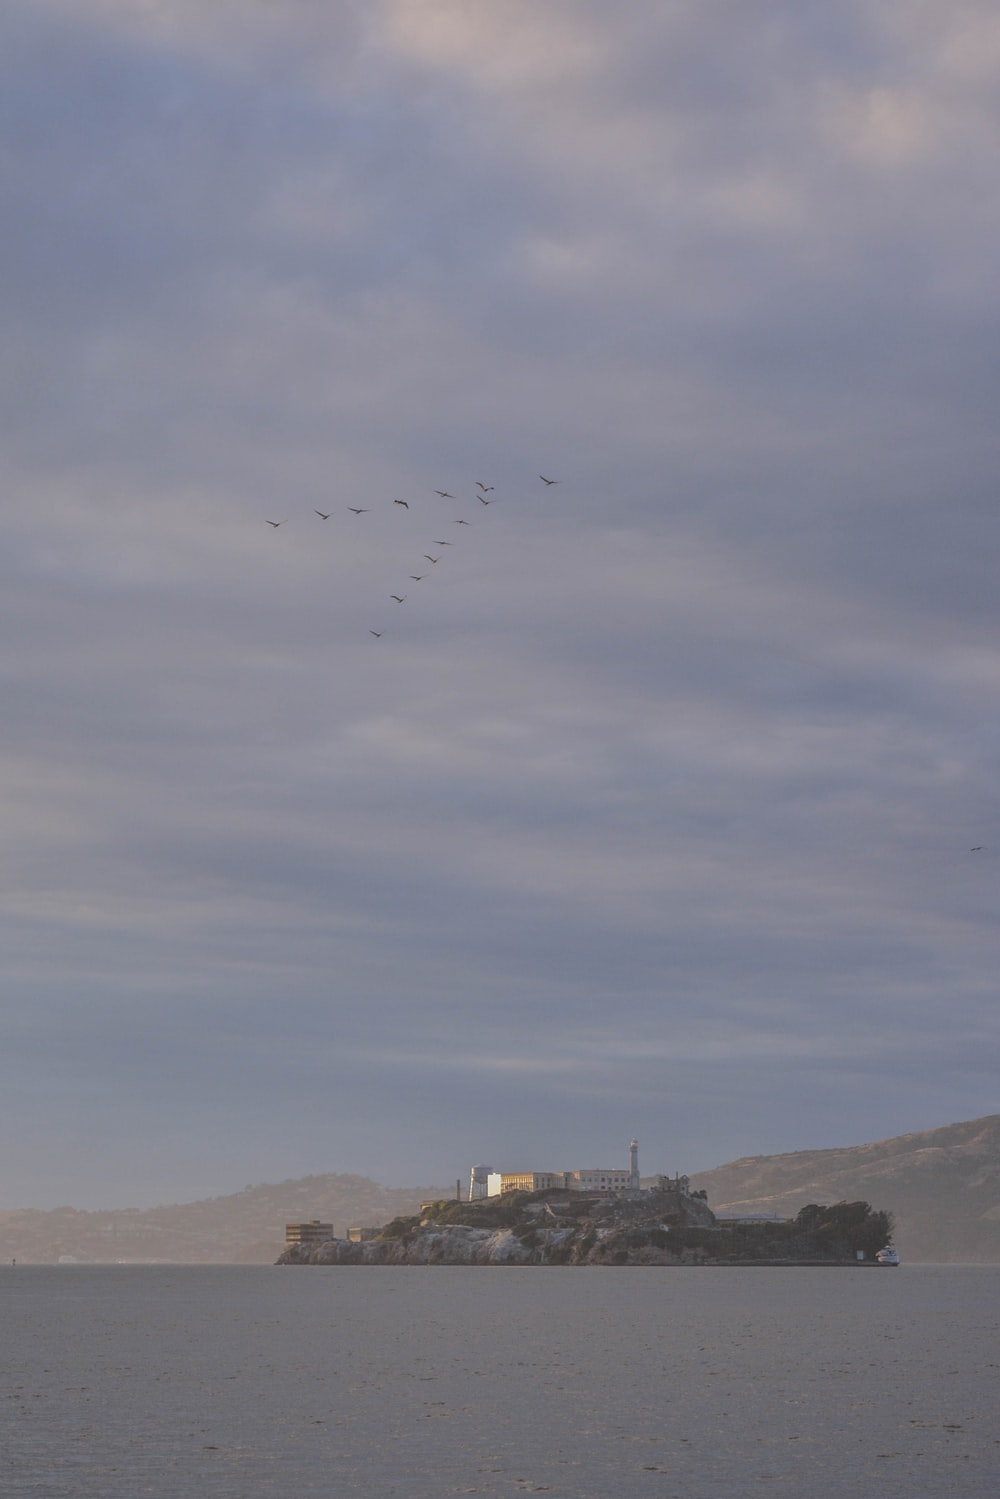 birds flying on v formation over Alcatraz